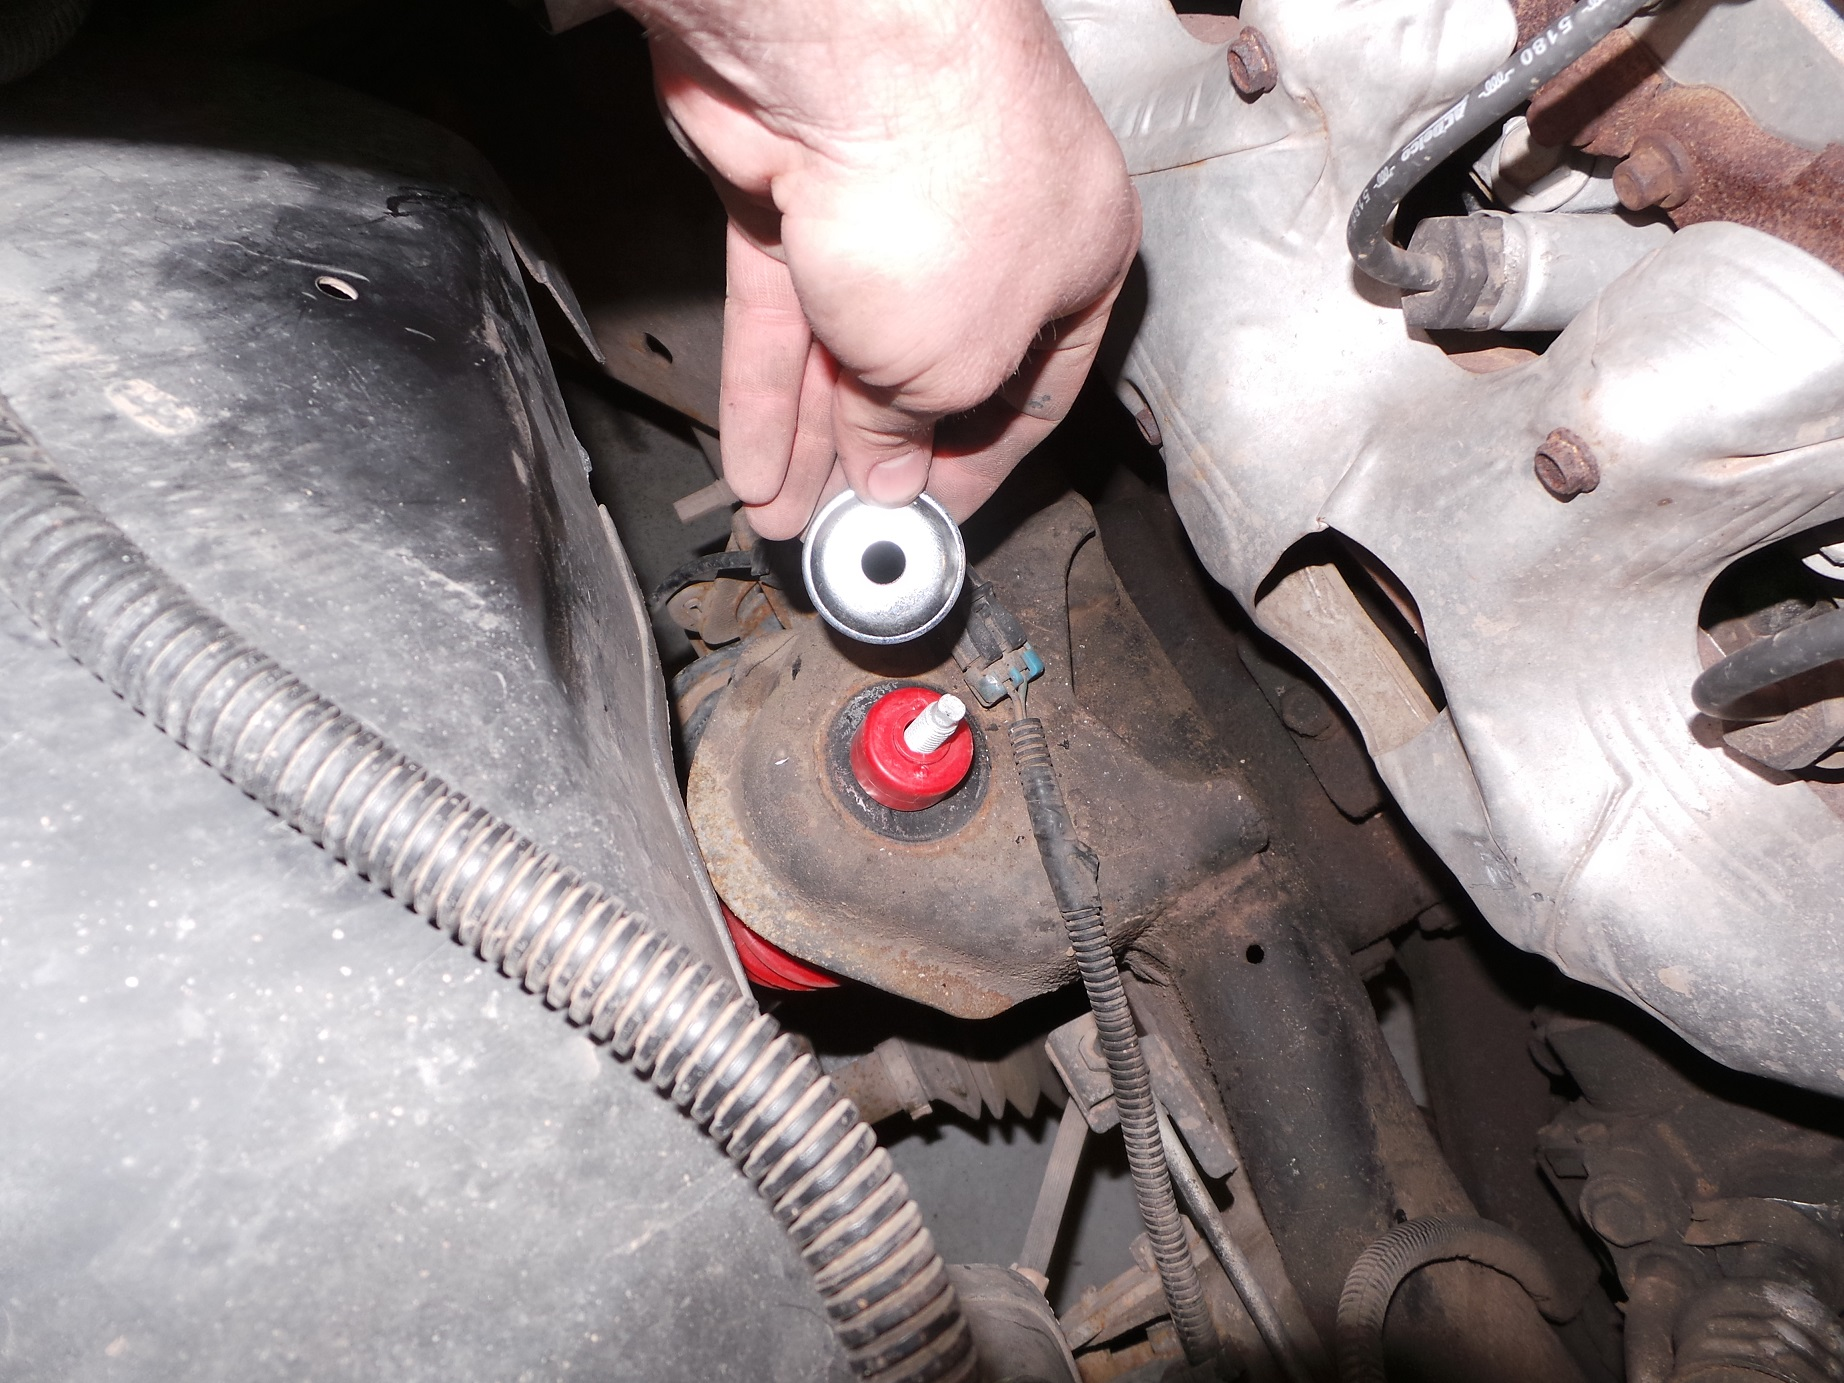 There are 2 bushing, 2 washers and a nut for the upper mount. Make sure the bushing is centered in the hole.